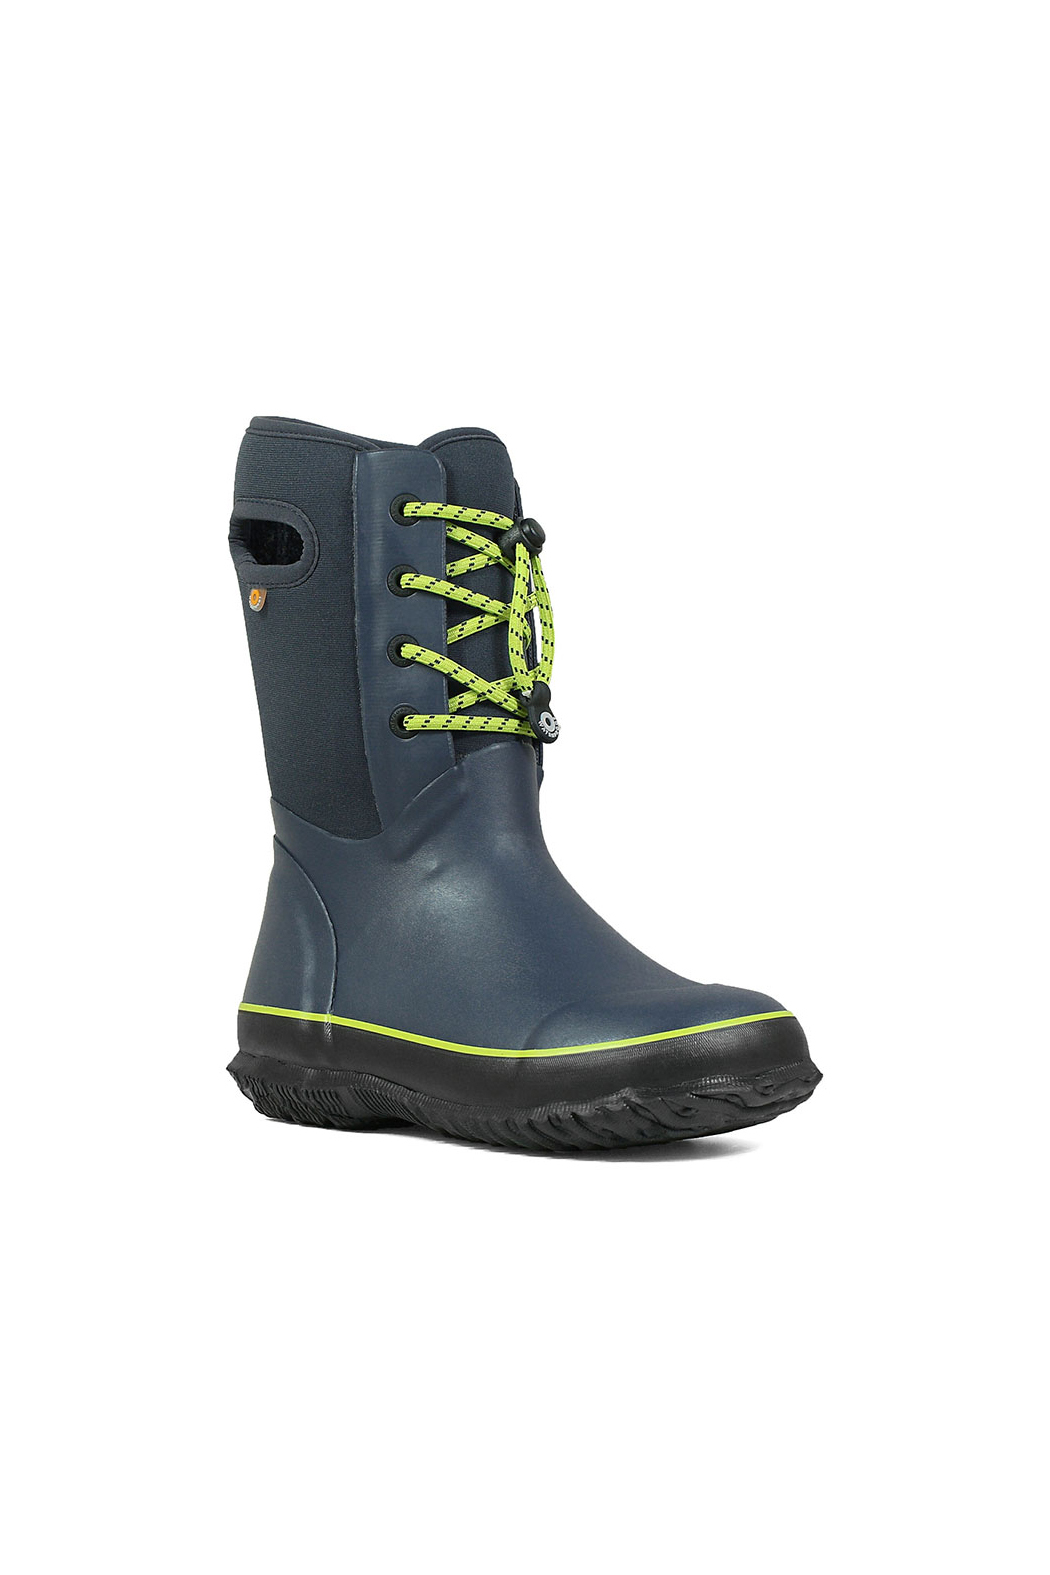 bogs  Arcata Lace Winter Waterproof Boots - Front Full Image